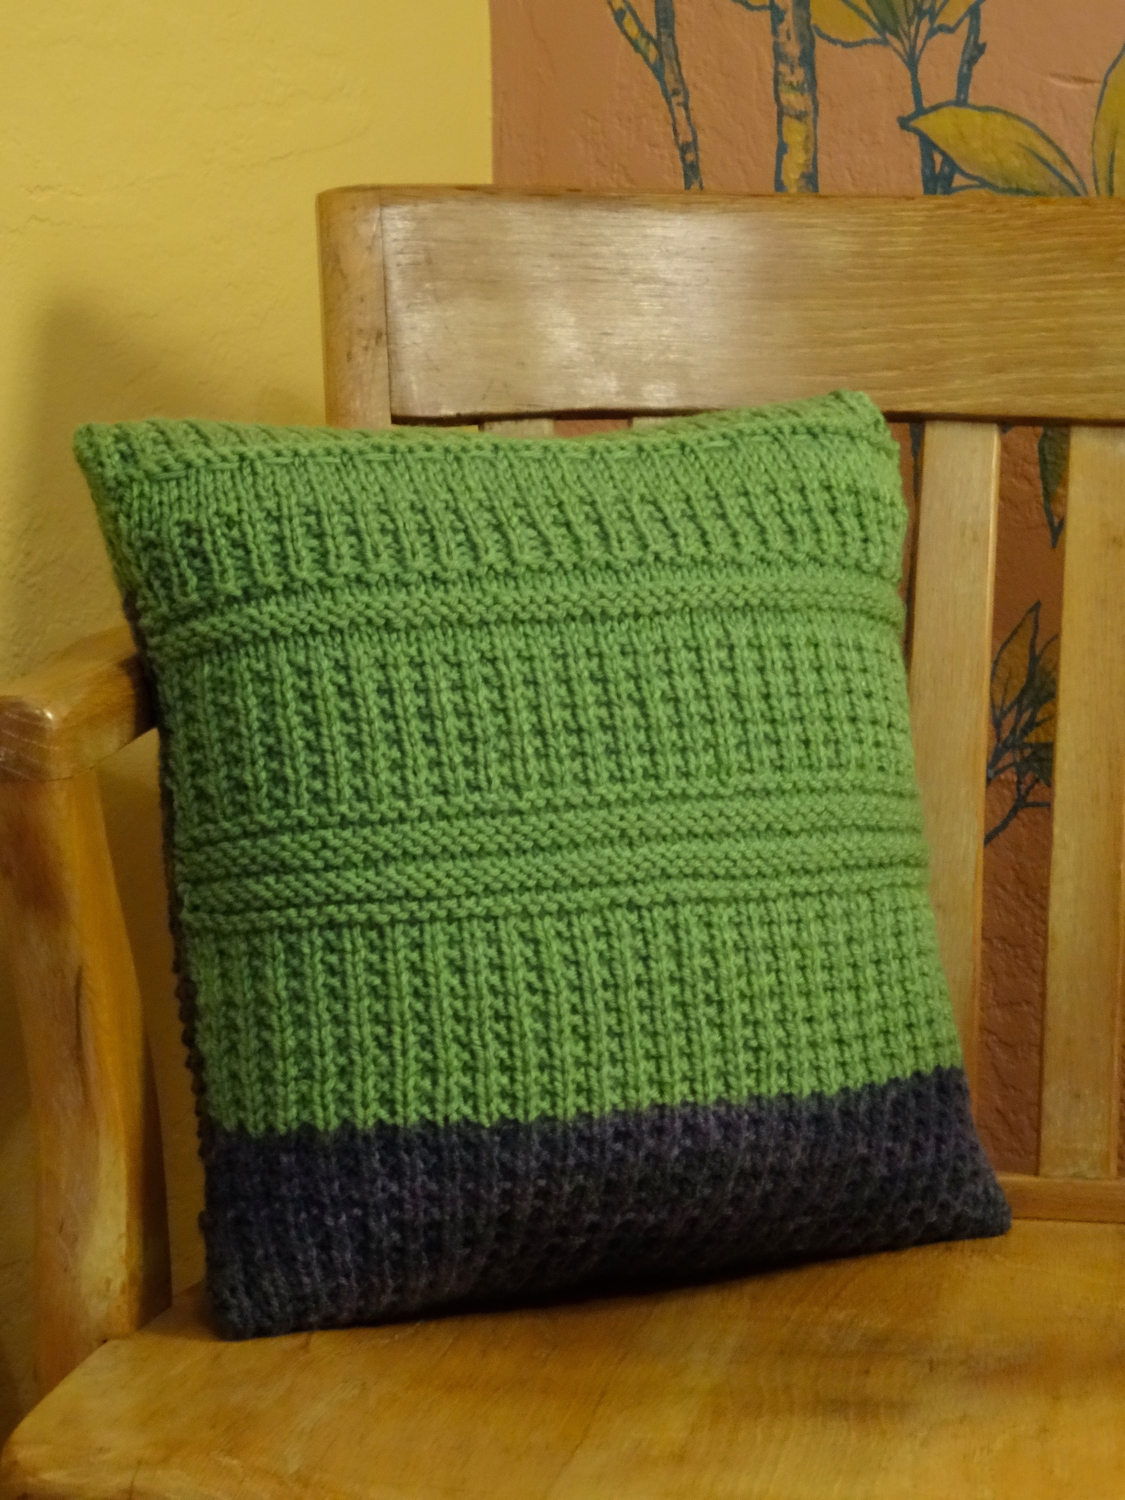 Knitted Pillow by Debra S. Walling